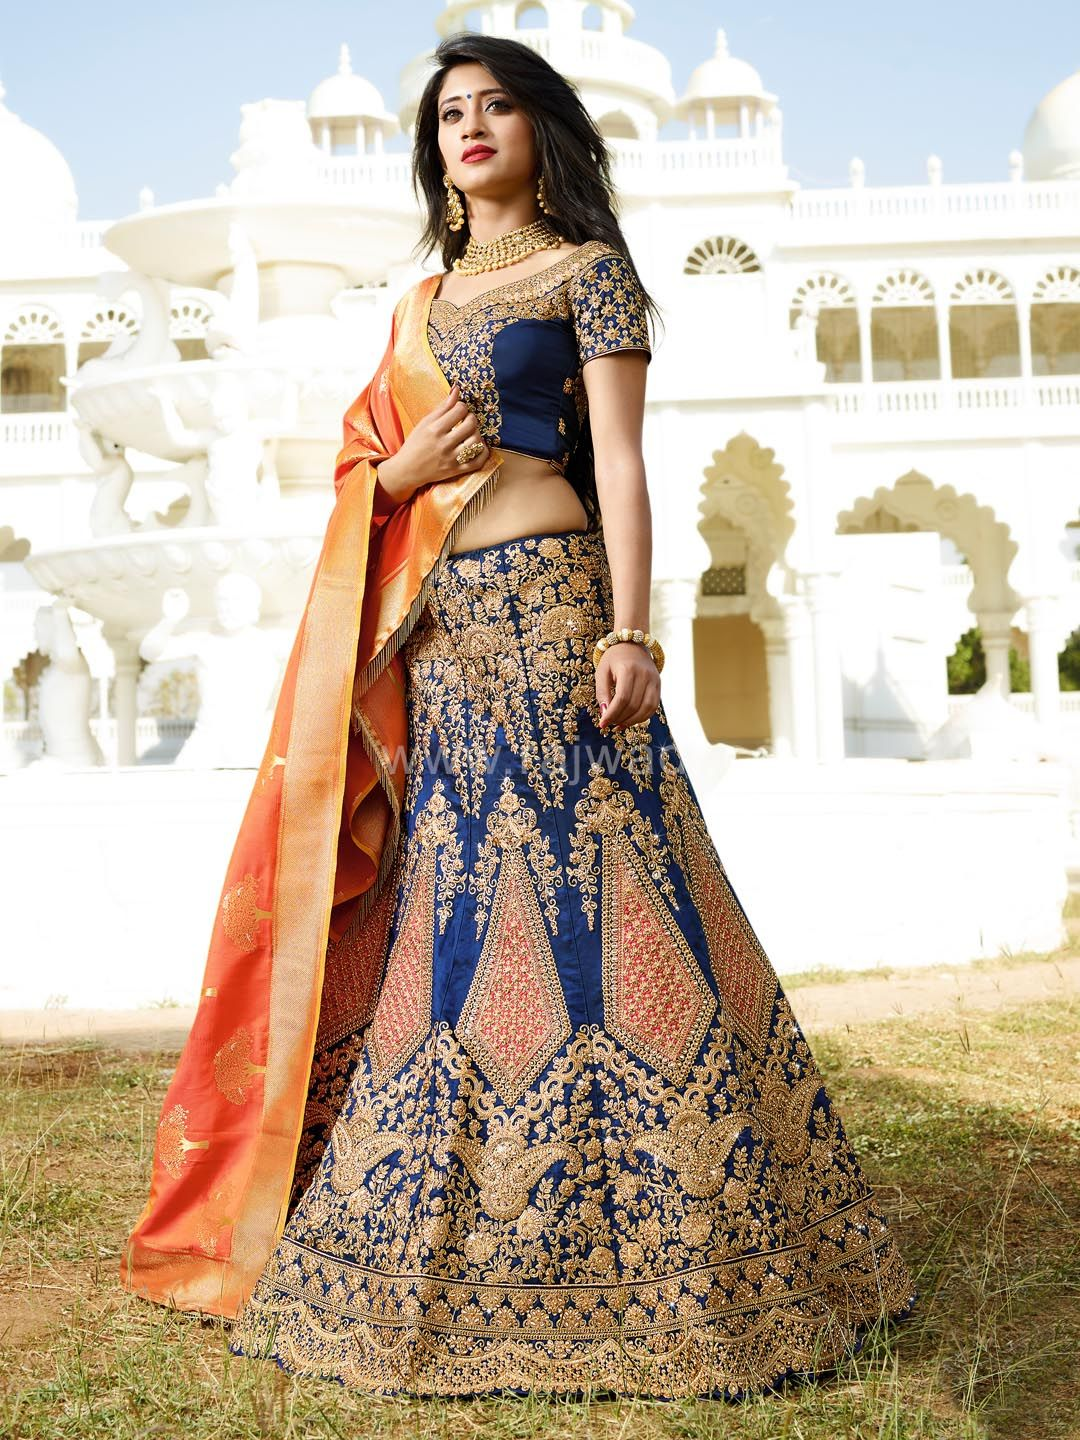 ea136a4579 WLC24463 - Blue and Dark Peach Color Shivangi Joshi Lehenga Choli.  Featuring a Navy Blue and Orange Dupion Silk Wedding ...